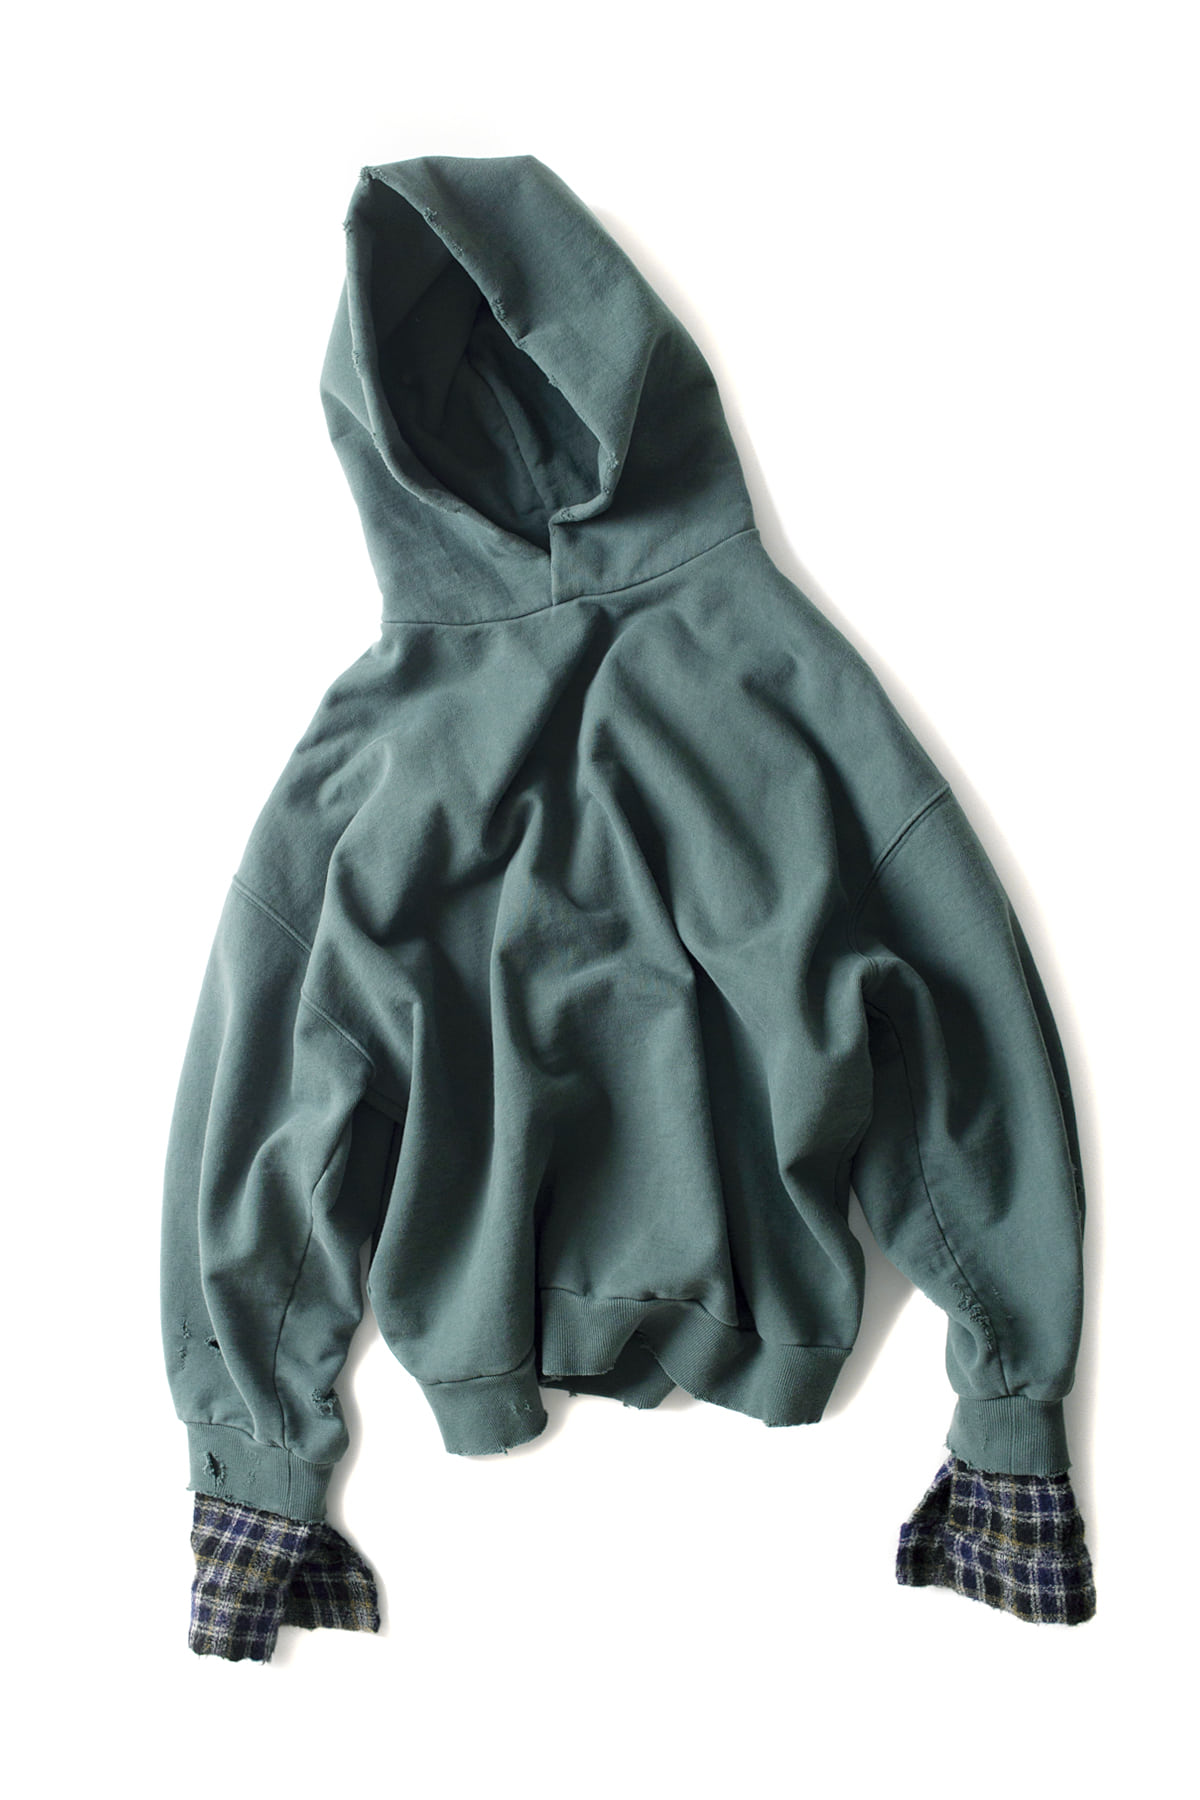 BIRTHDAYSUIT : Wool Check Oversized Hoody (Green)